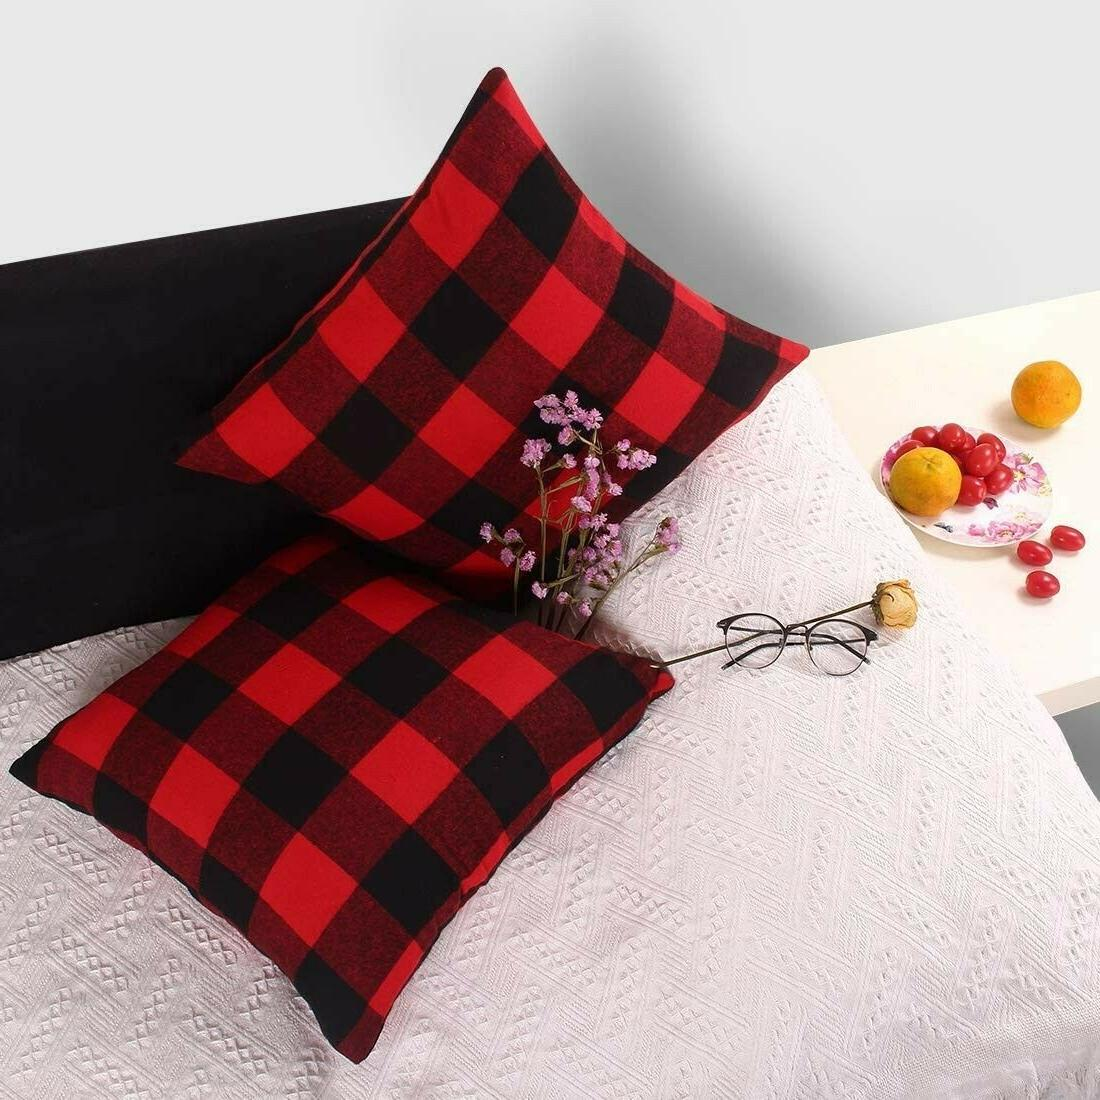 2 Throw Pillow Red Black Christmas Decor Cushion Case